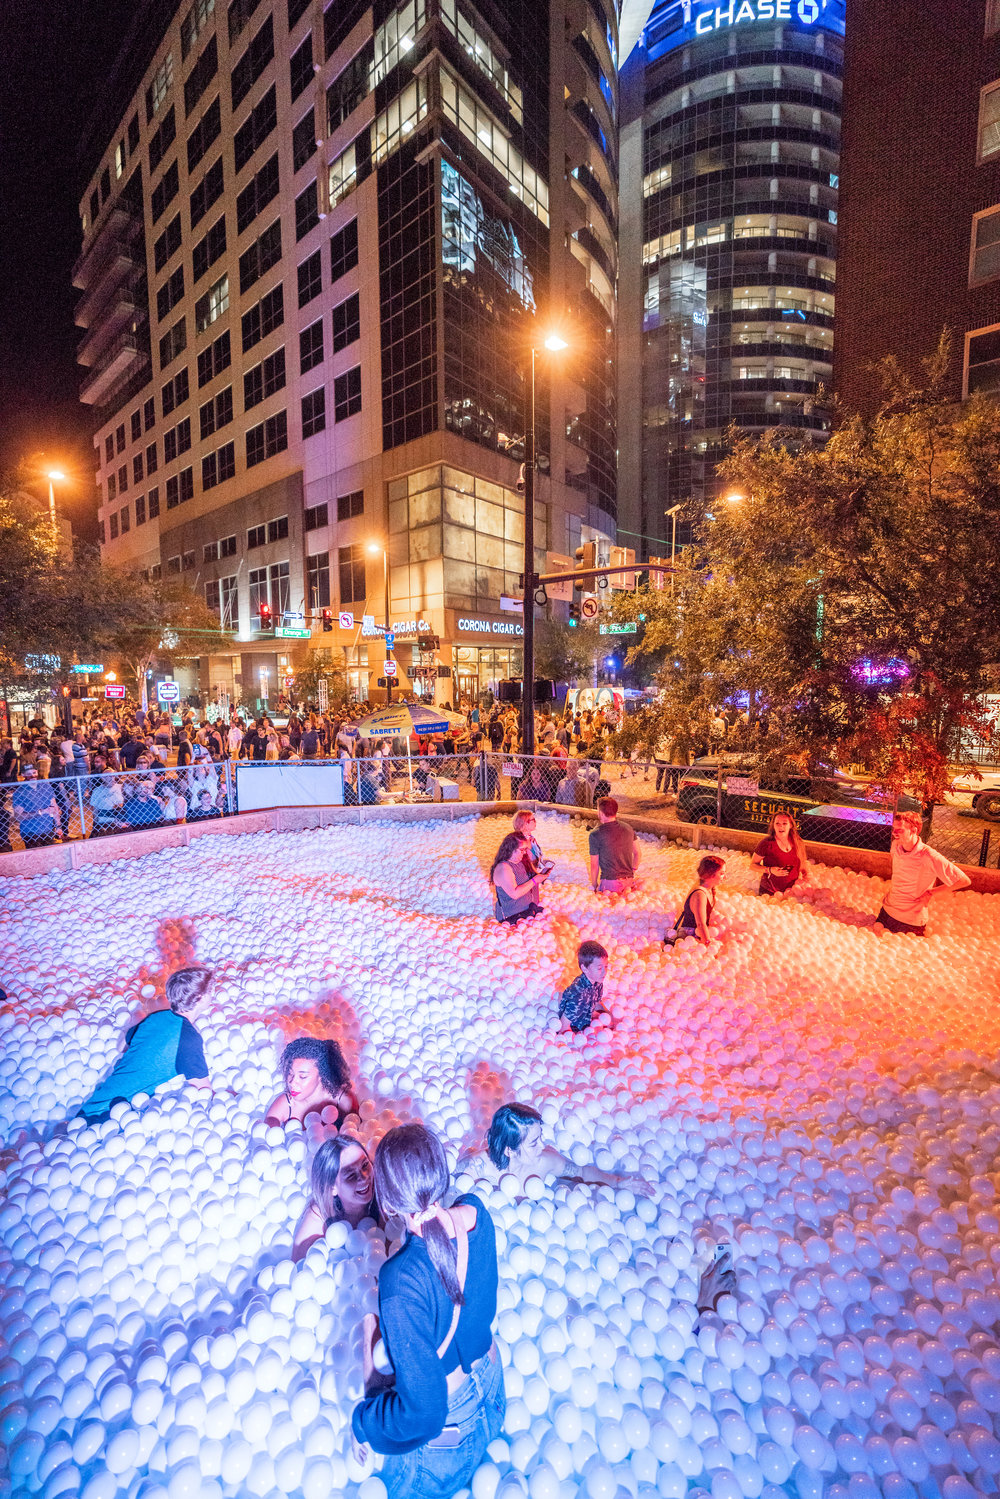 The Giant Ball Pit (photo : Quay Hu)